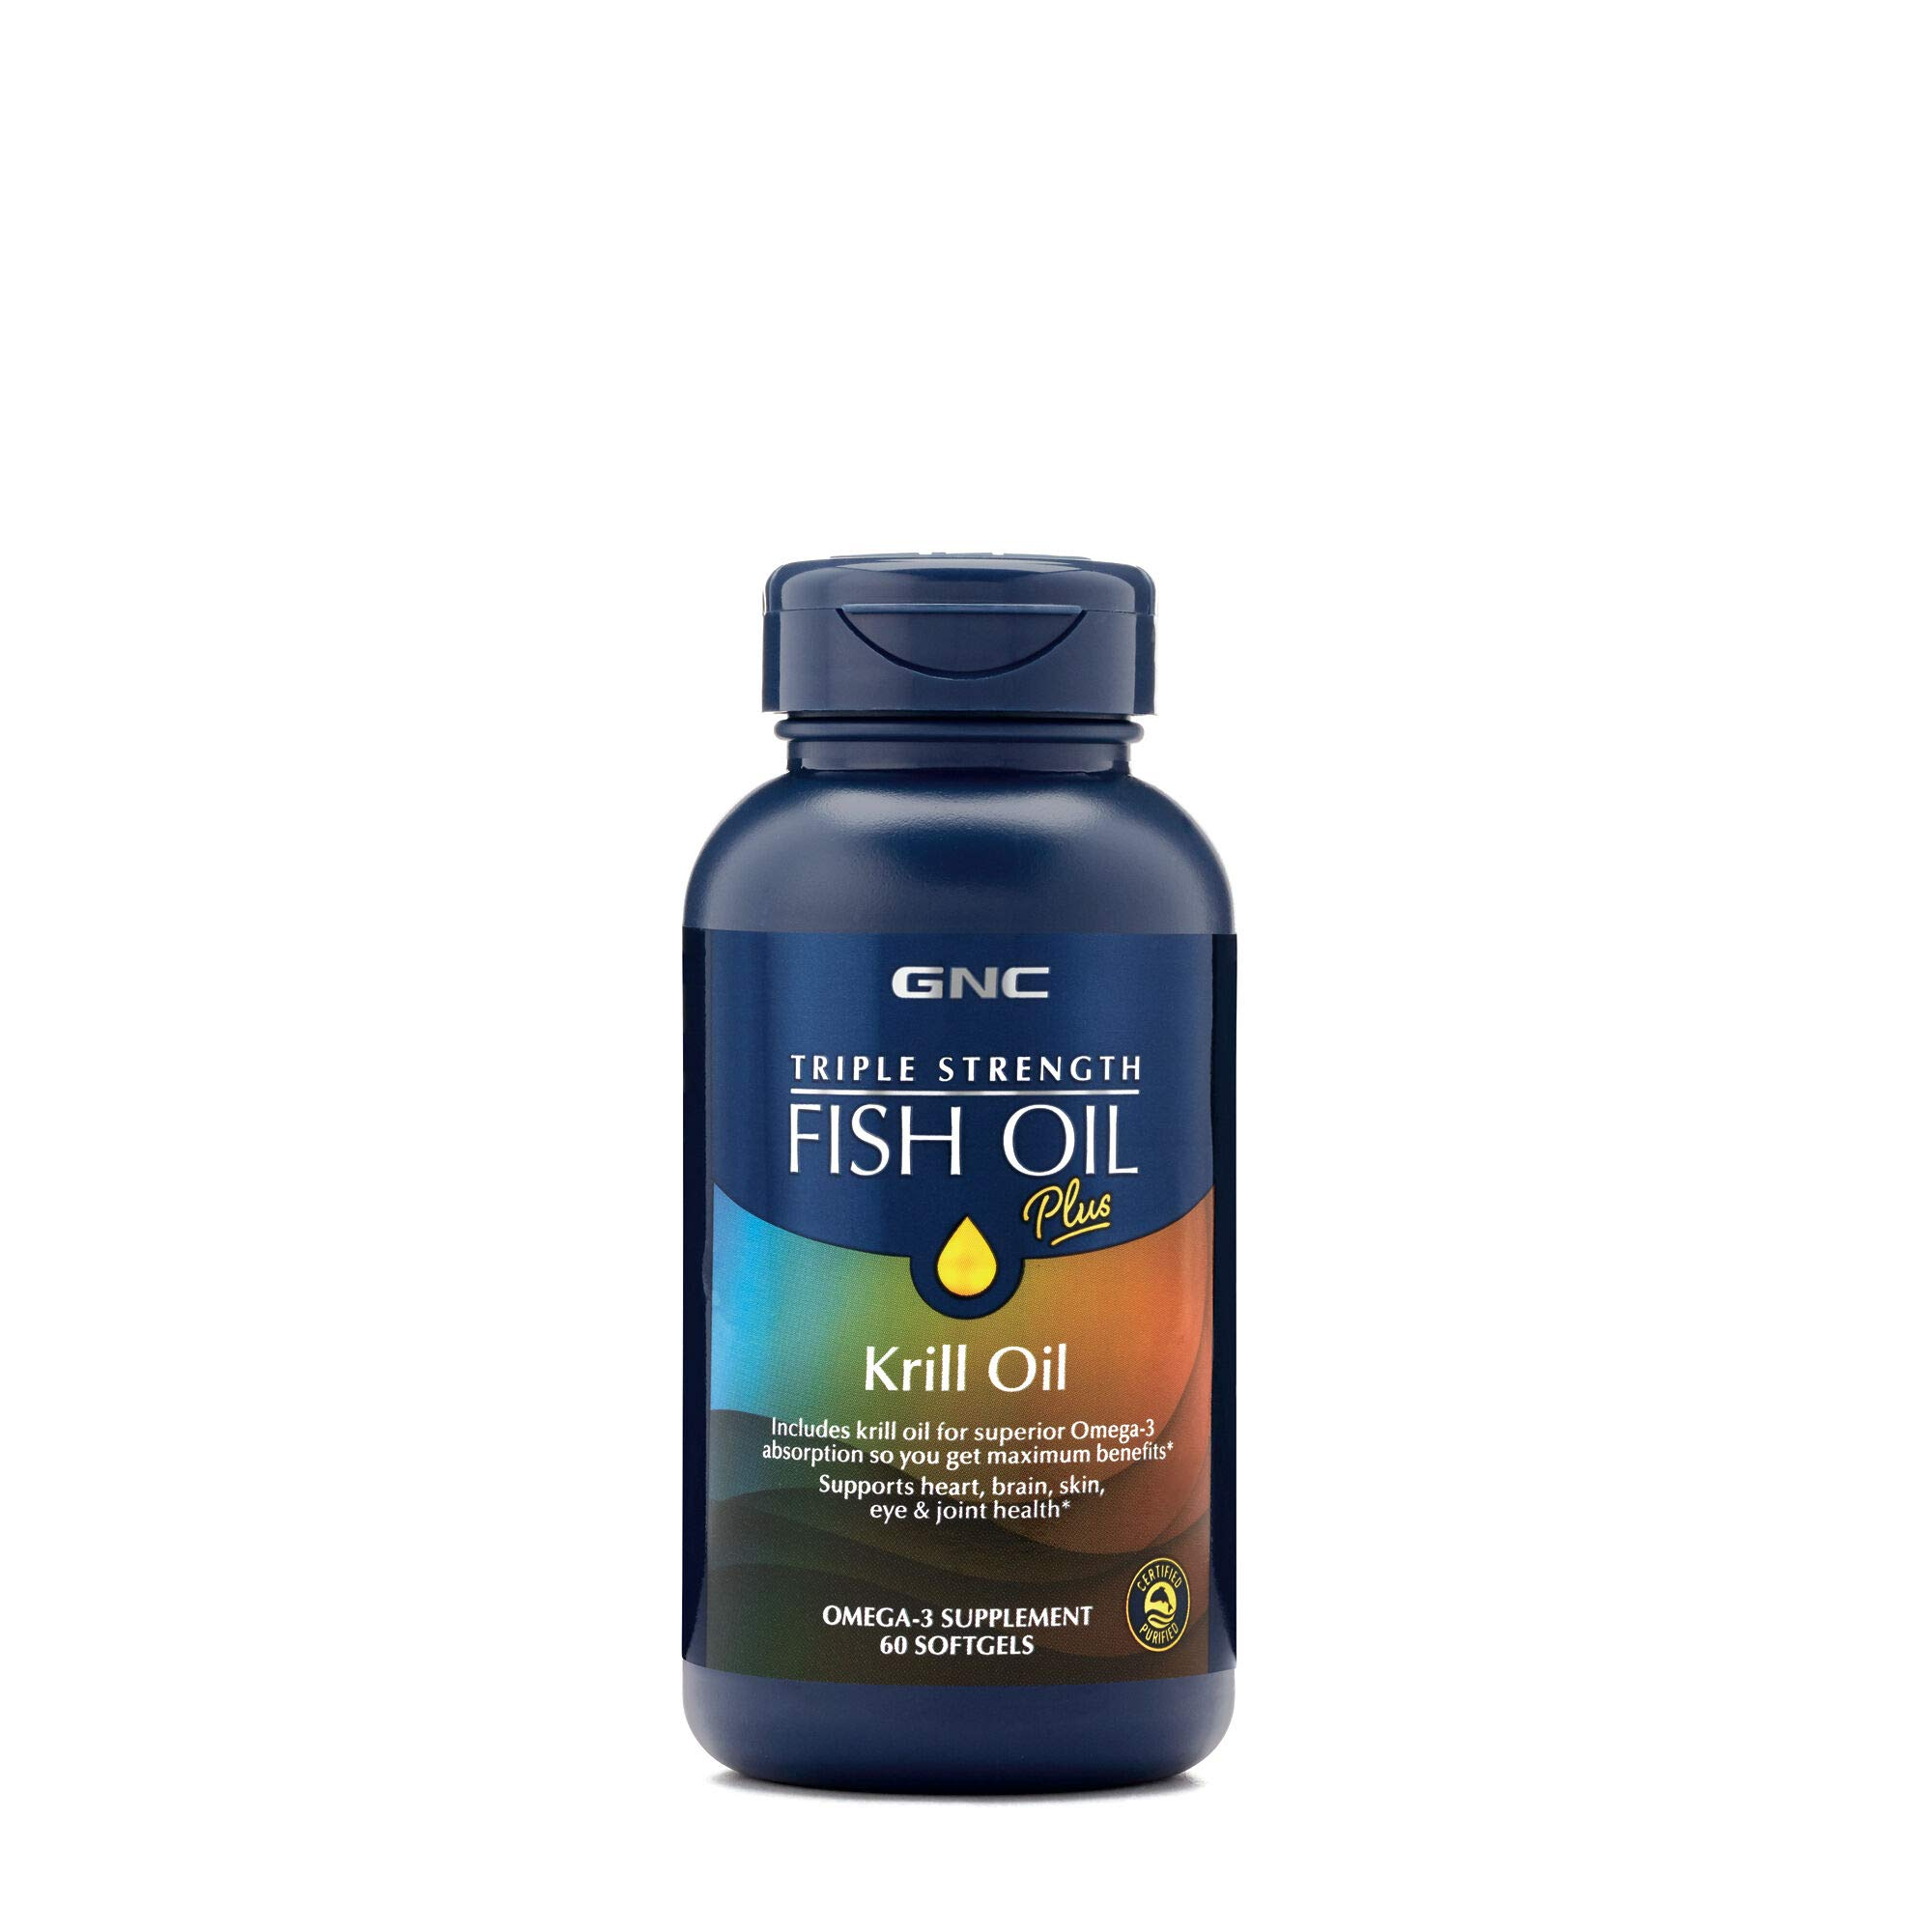 GNC Triple Strength Fish Oil Plus Krill Oil, 60 Softgels, for Join, Skin, Eye, and Heart Health by GNC